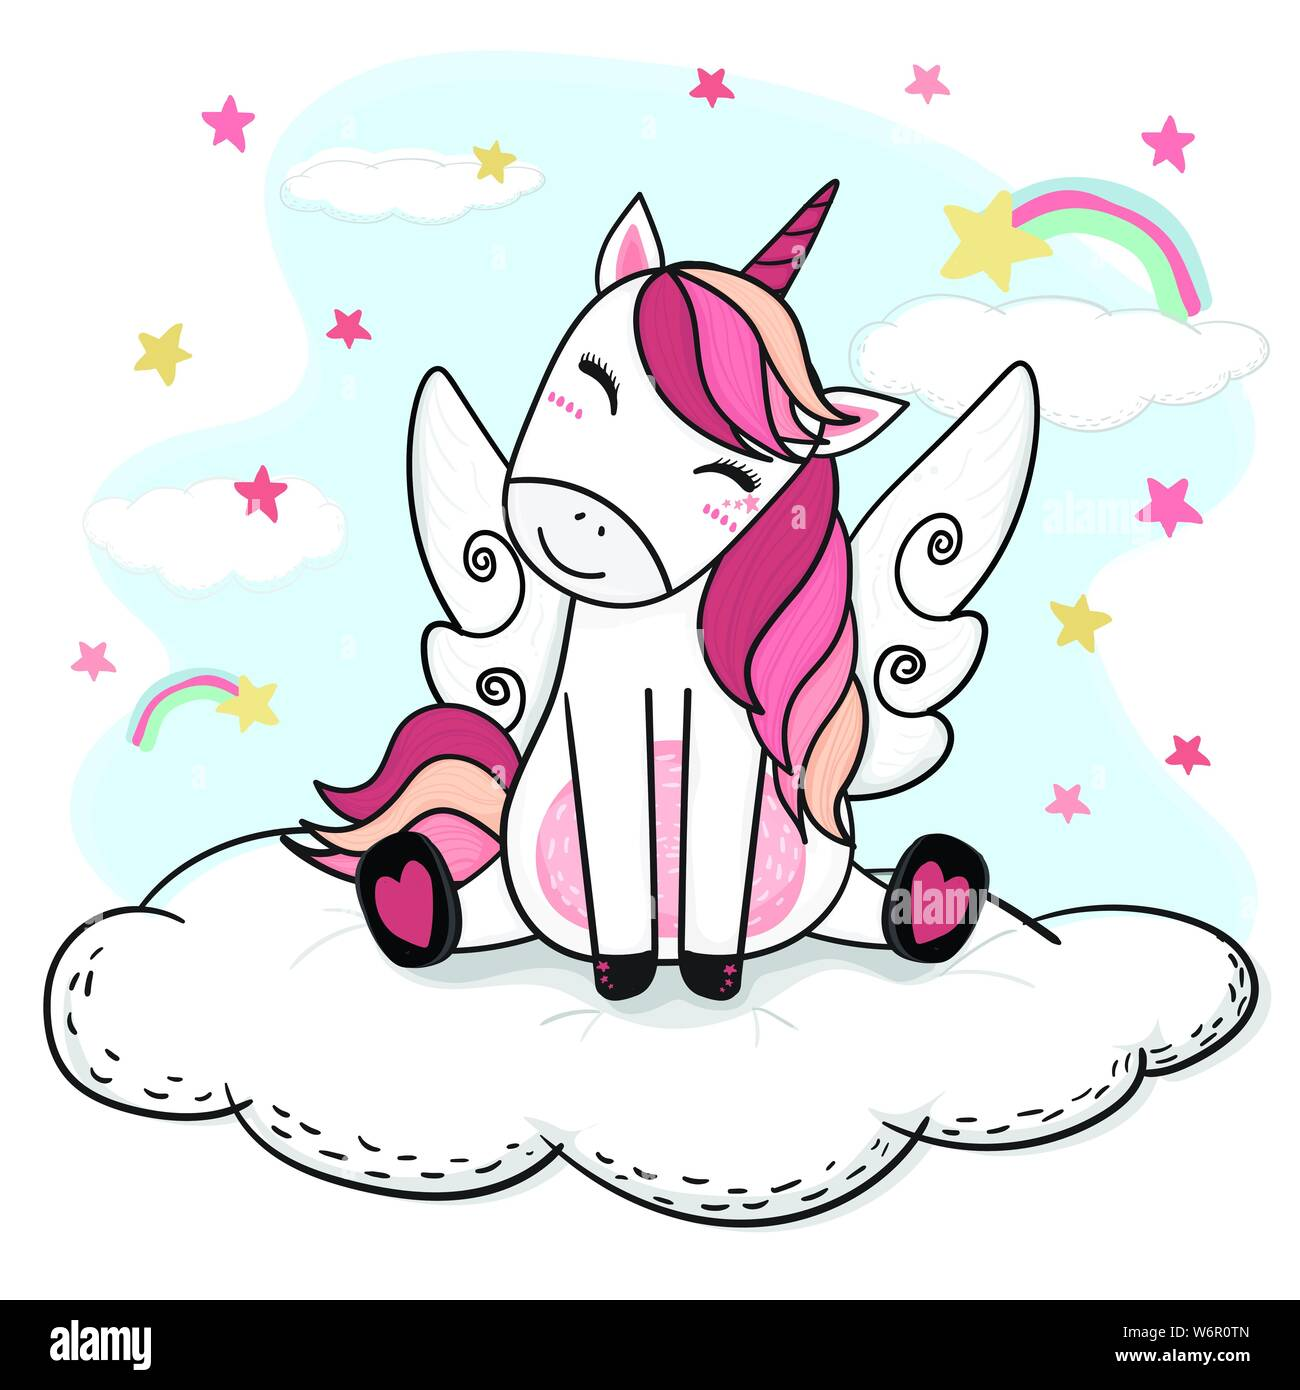 Cute Drawing Happy Smile Unicorn In Pink With Angle Wing